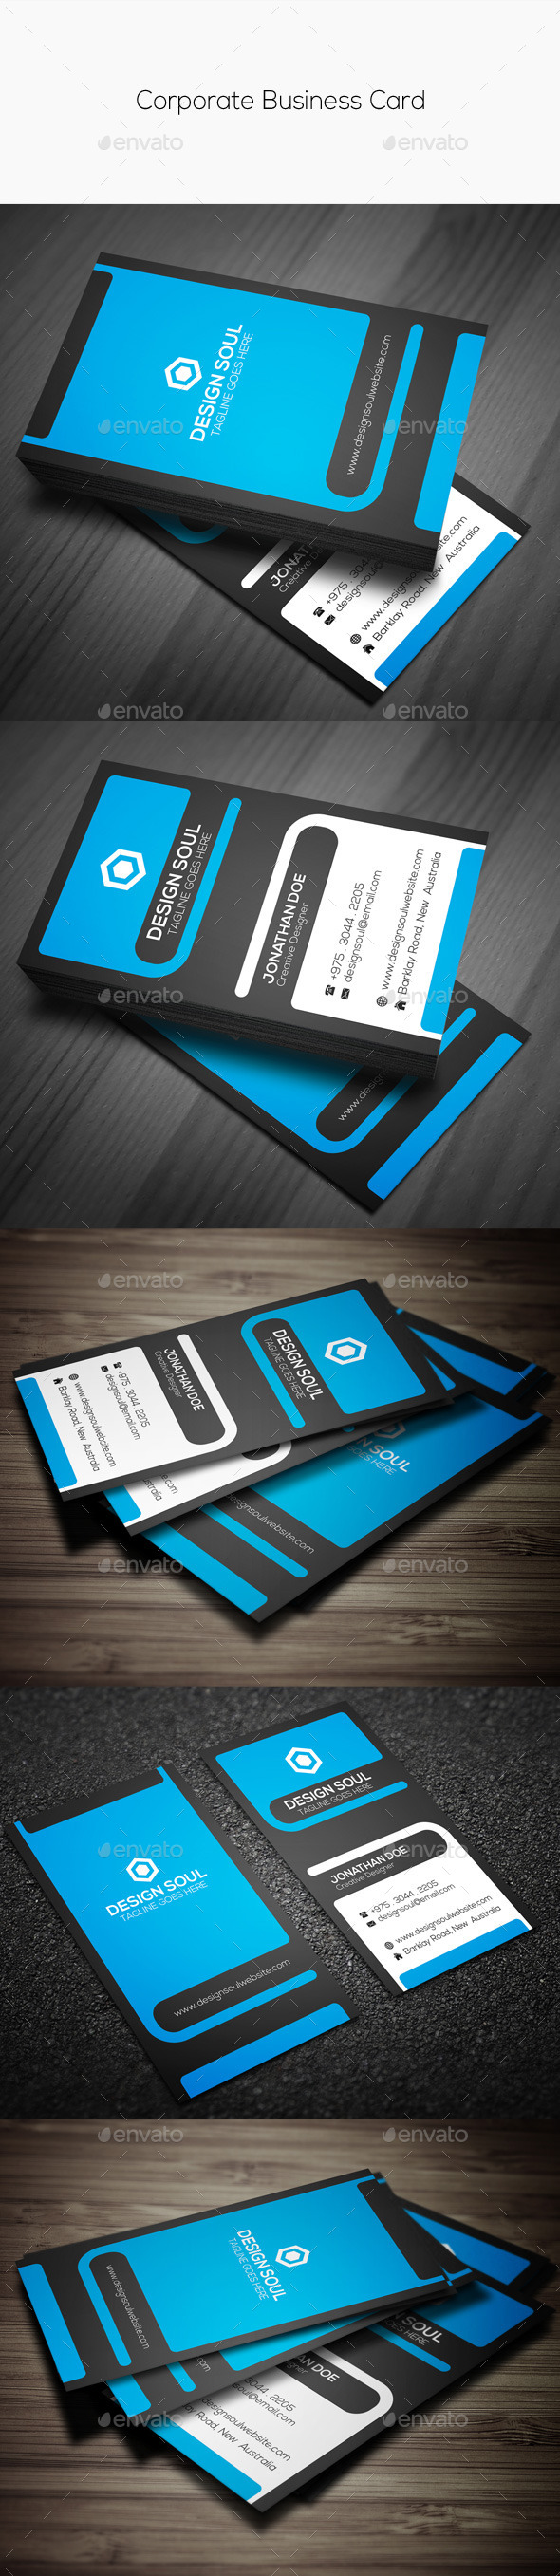 GraphicRiver Corporate Business Card 9447157